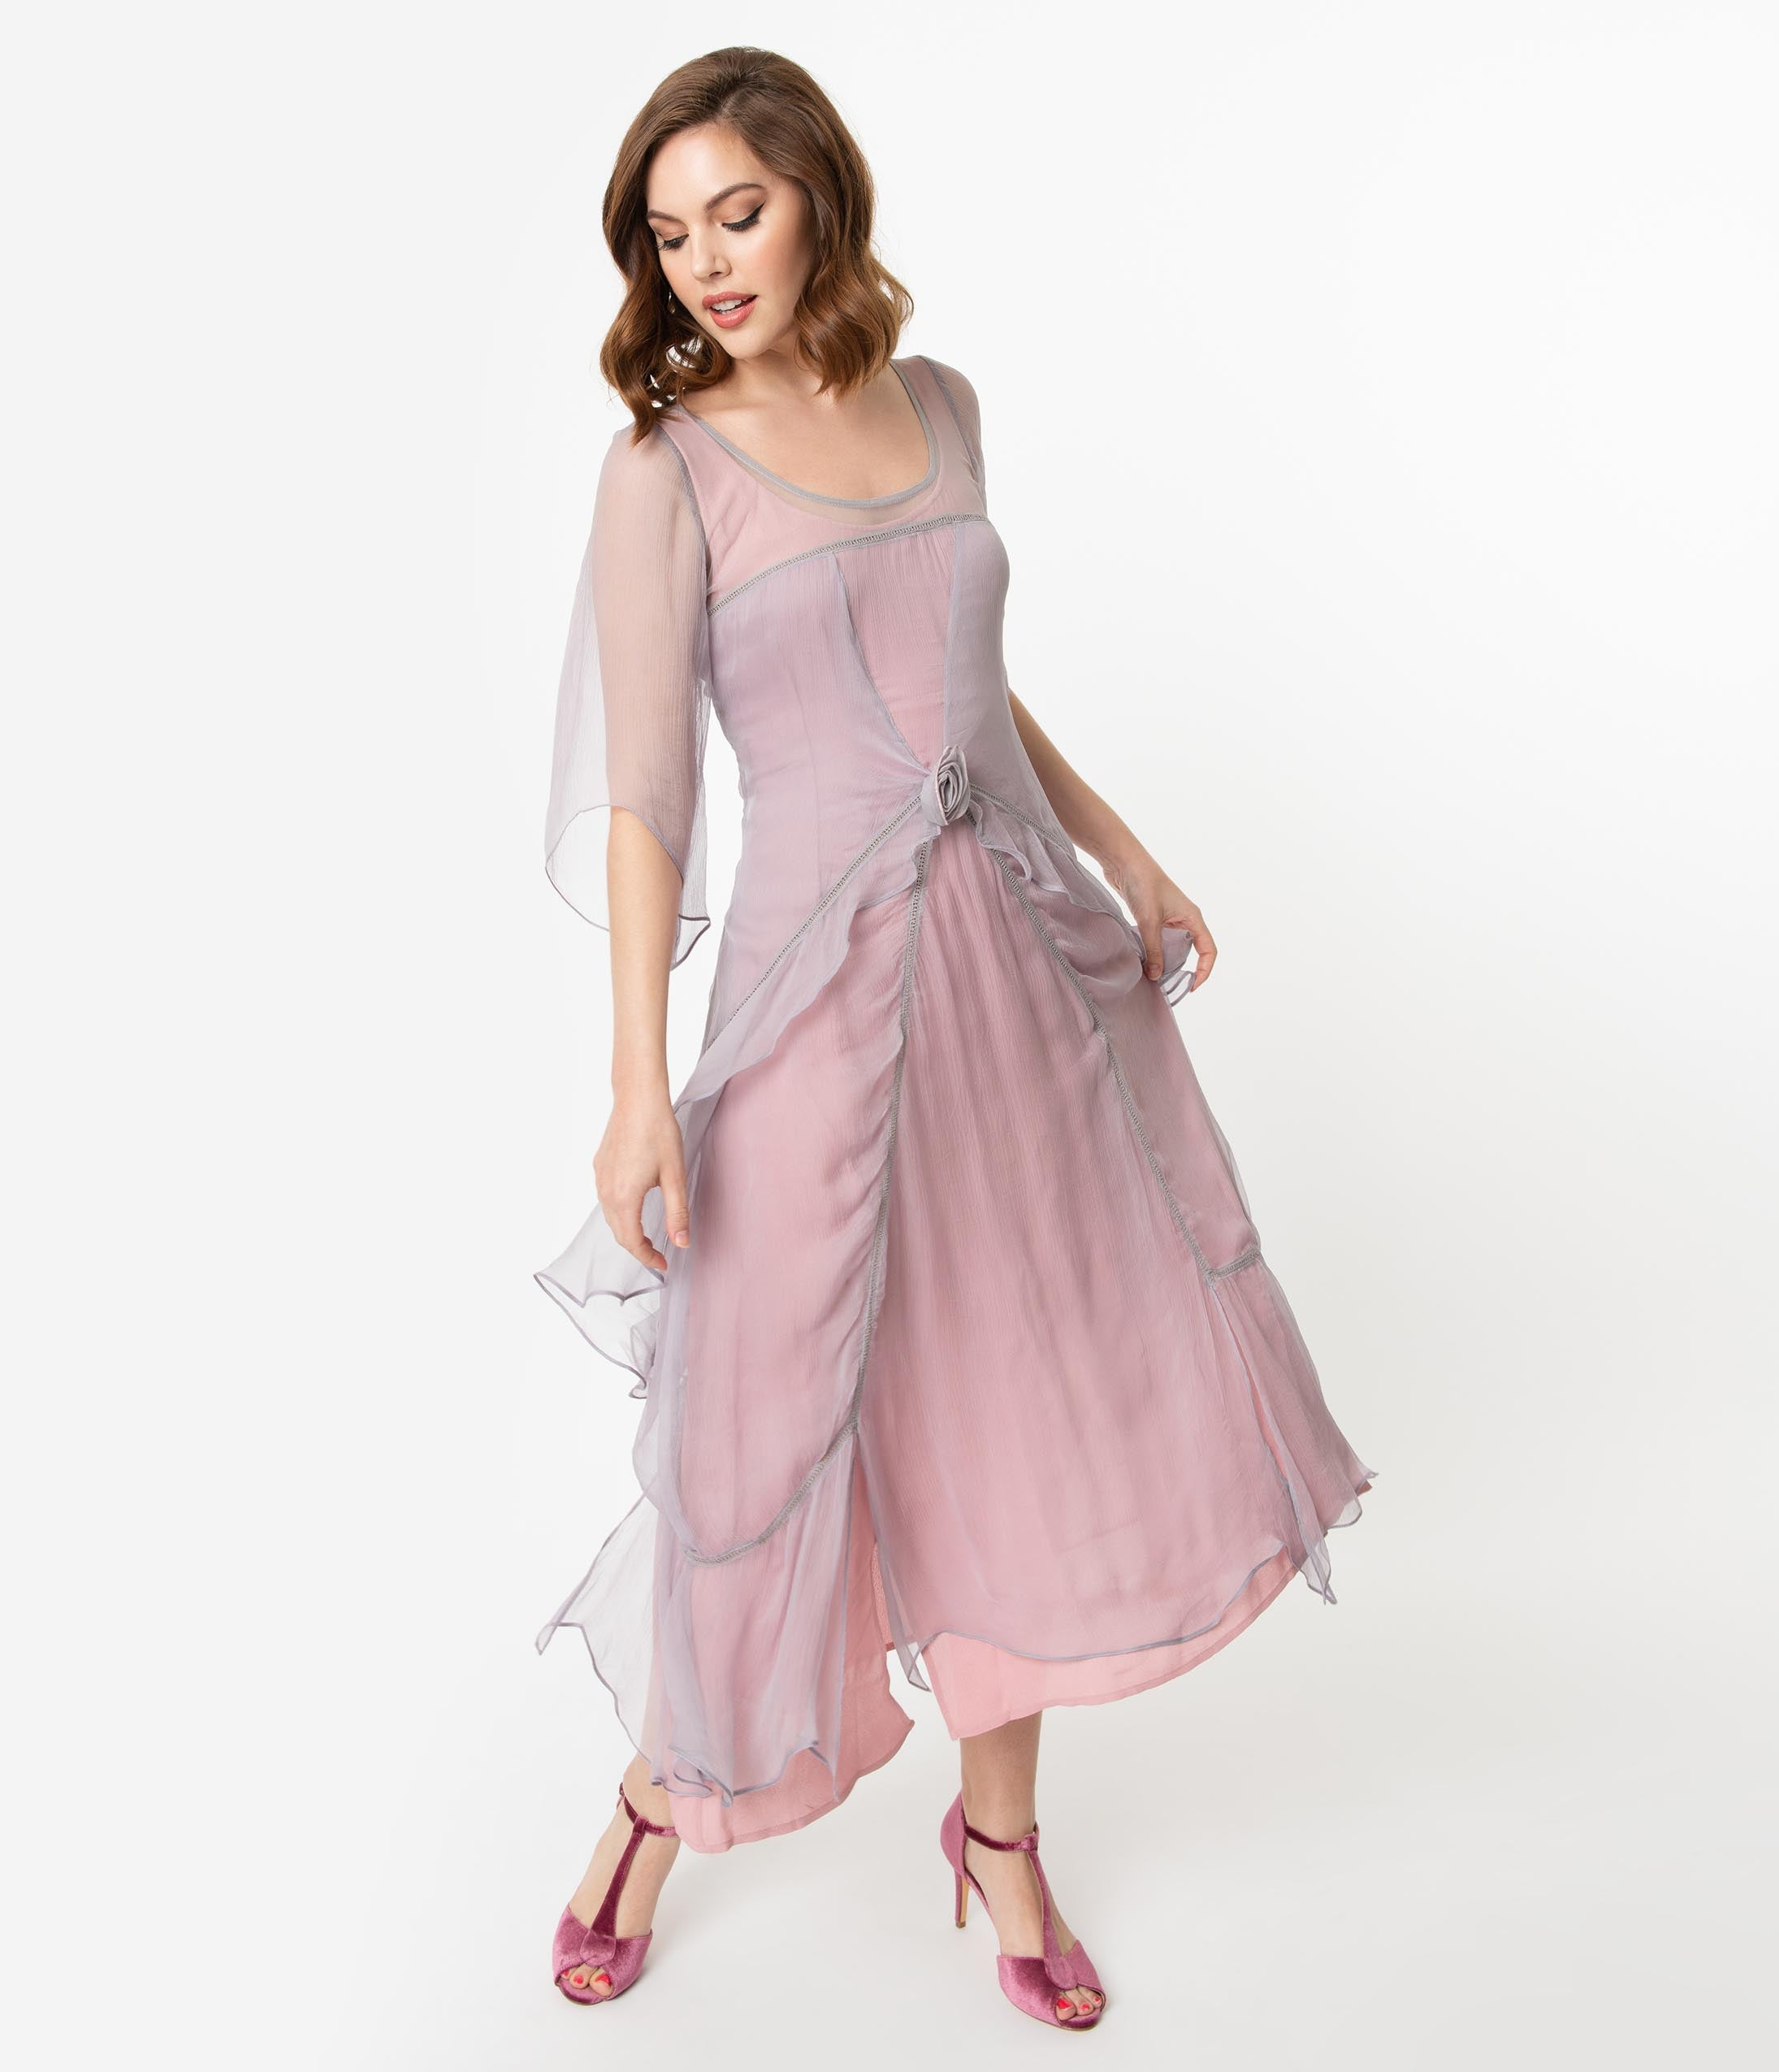 1920s Fashion & Clothing | Roaring 20s Attire Vintage Style Mauve  Pink Chiffon Sleeved Edwardian Flapper Dress $242.00 AT vintagedancer.com